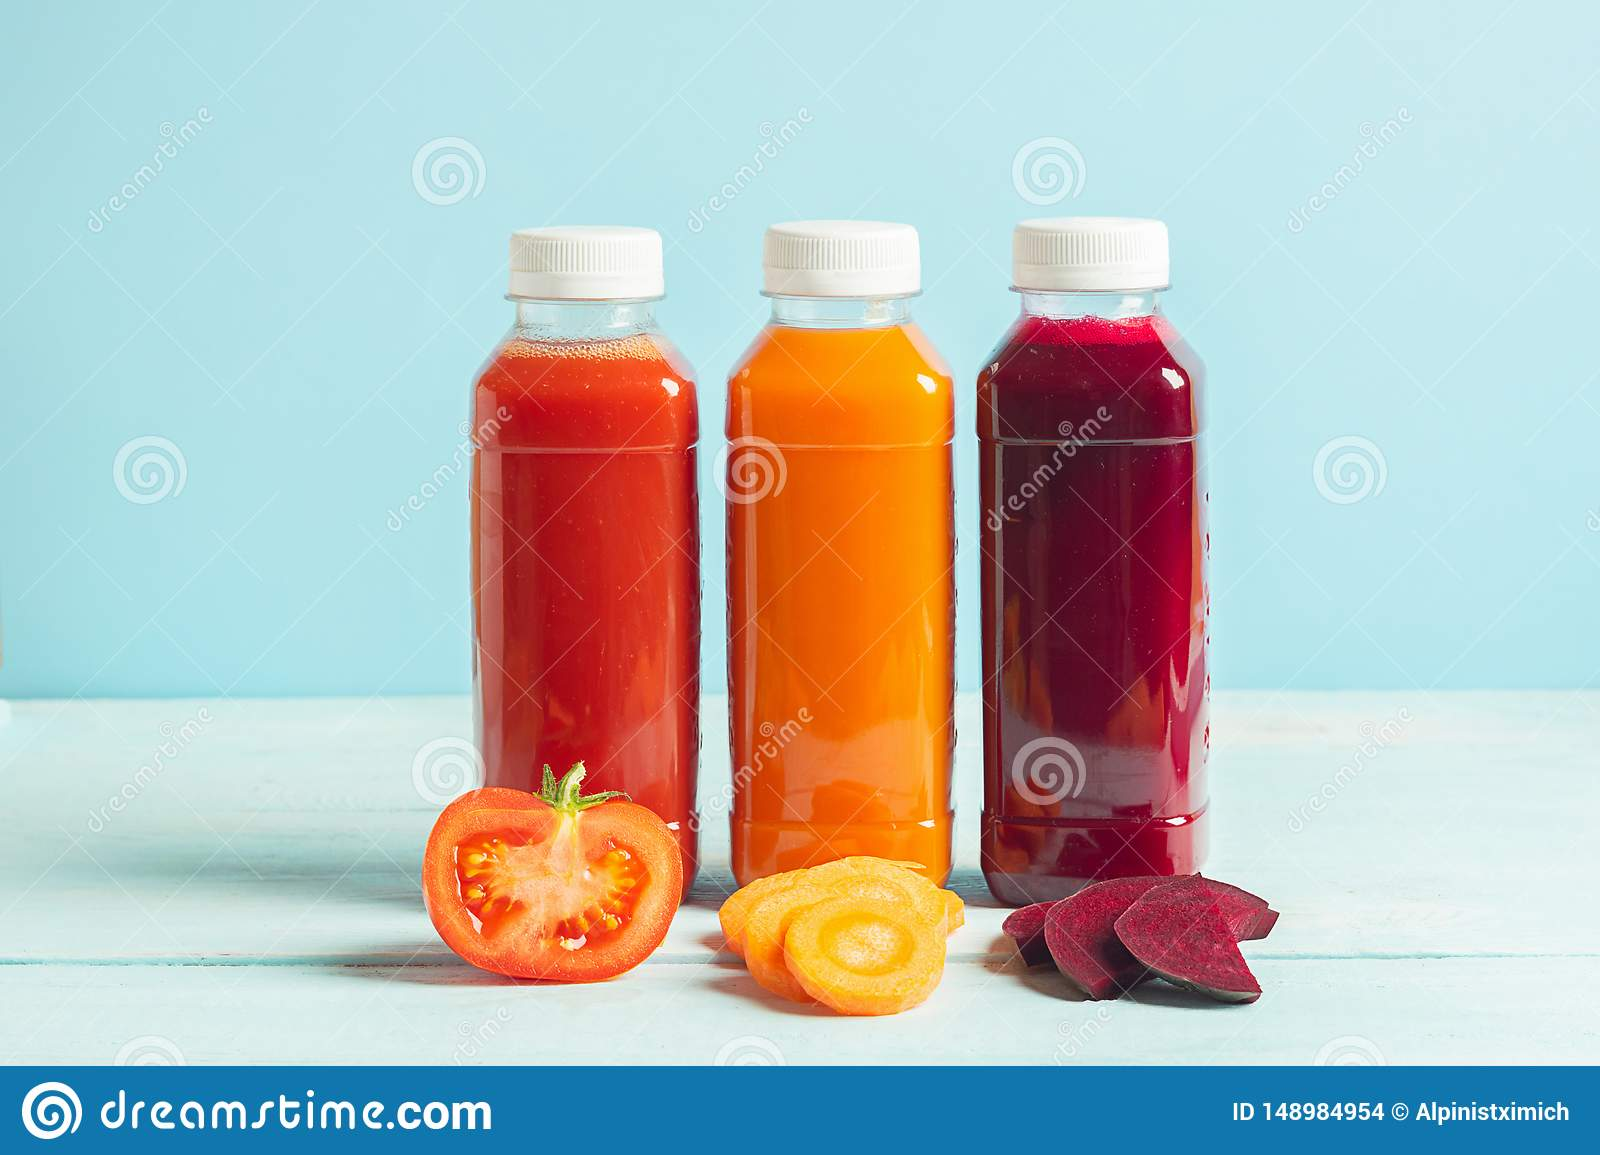 Fresh juice smoothies from a variety of vegetables carrots apple tomatoes beets in bottles on a wooden blue background